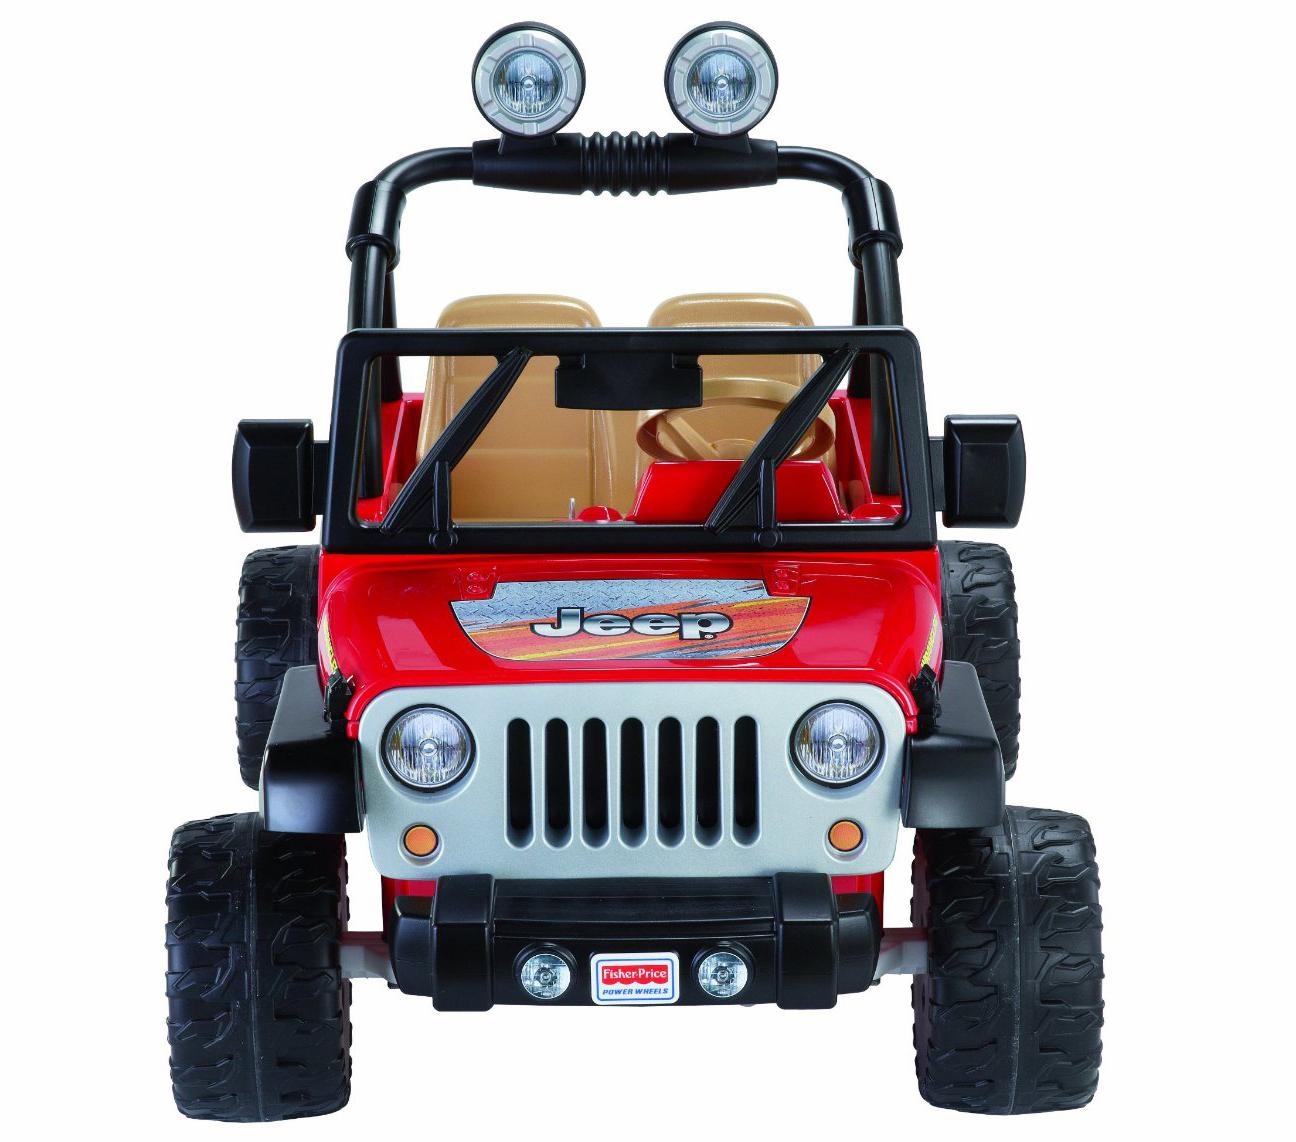 Fisher-Price Power Wheels Jeep Wrangler Kids Battery